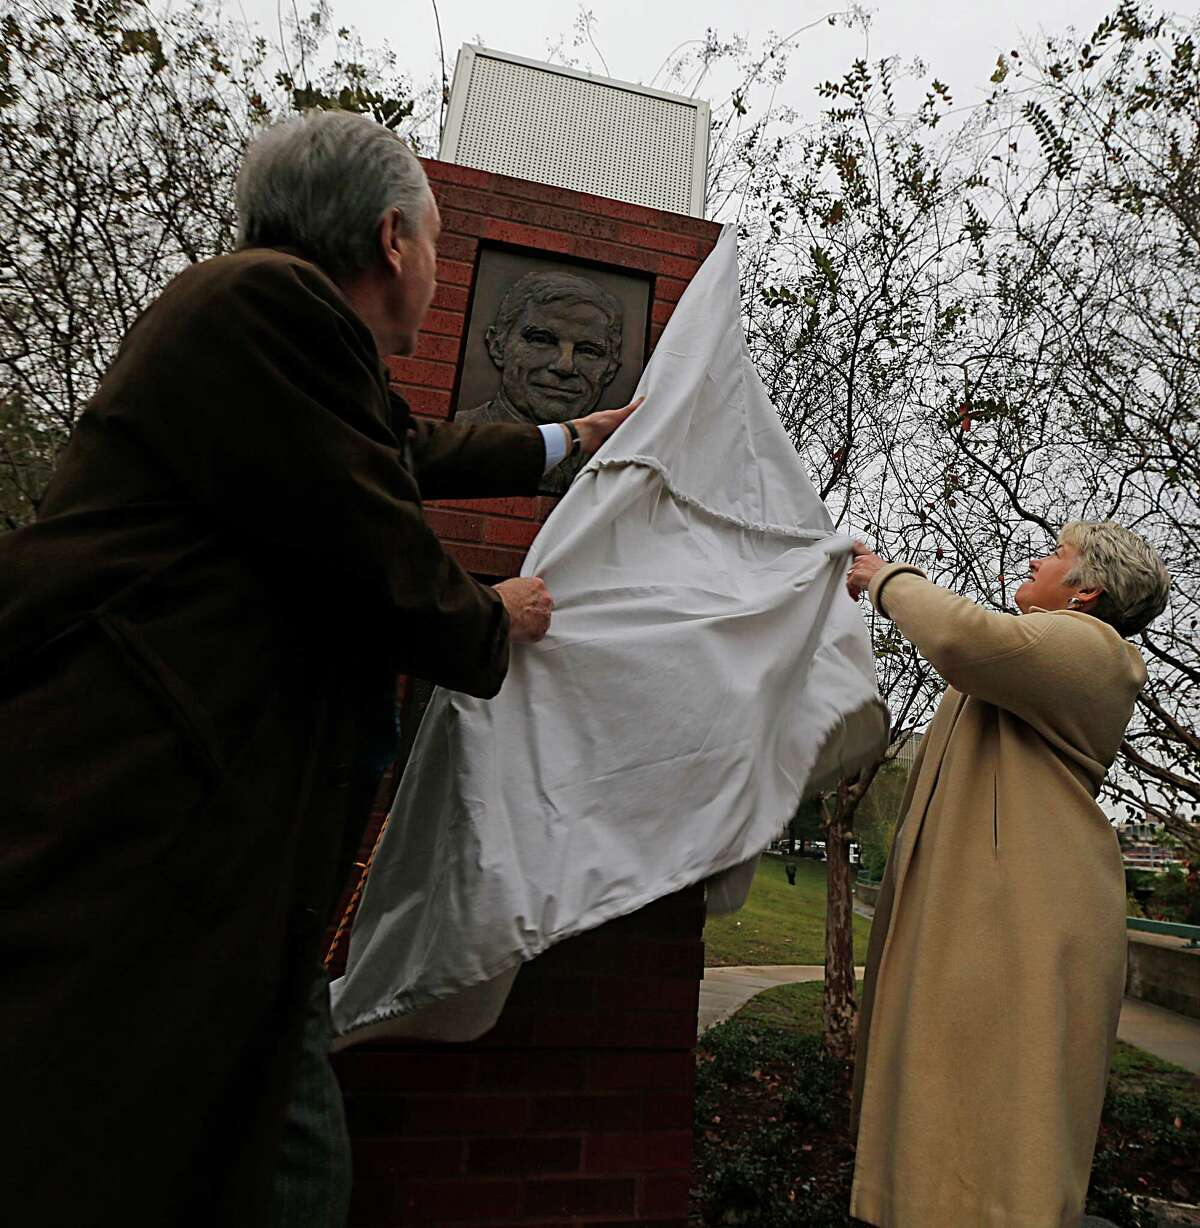 Davis Jones left, and Mayor Annise Parker right, unveil one of two bronze relief panels depicting former U.S. Commerce Secretary Robert Mosbacher, Sr. during the gifting ceremony, the commemorative panels are located near the Preston Street Bridge in Sesquicentennial Park Wednesday, Dec. 30, 2015, in Houston. The bridge has been renamed as the Robert A. Mosbacher, Sr., Memorial Bridge.